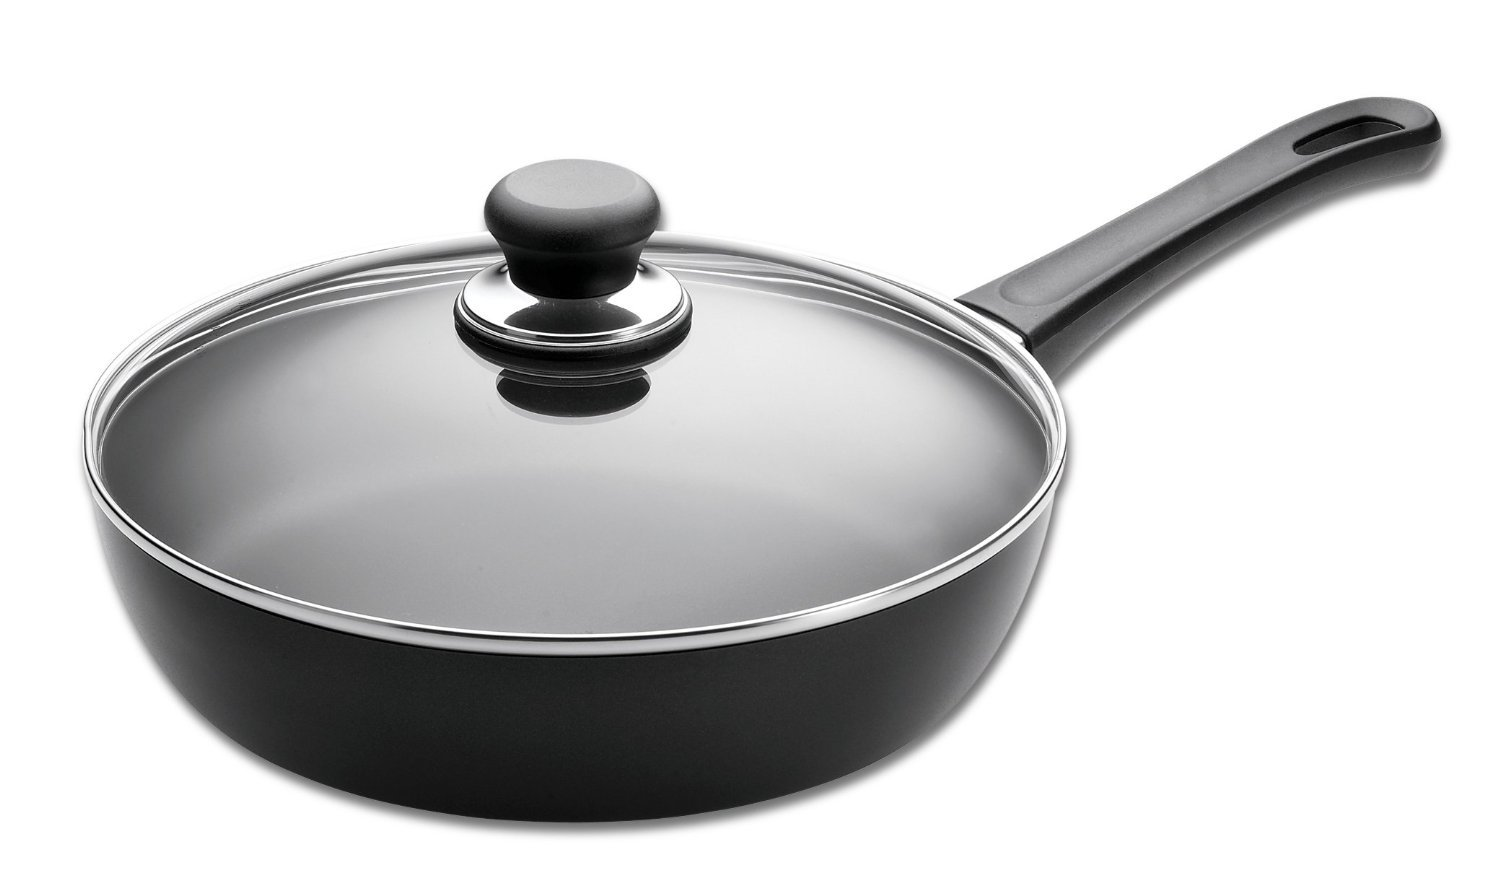 Scanpan Classic Covered Saute Pan, 10.25-Inch by Scanpan (Image #1)